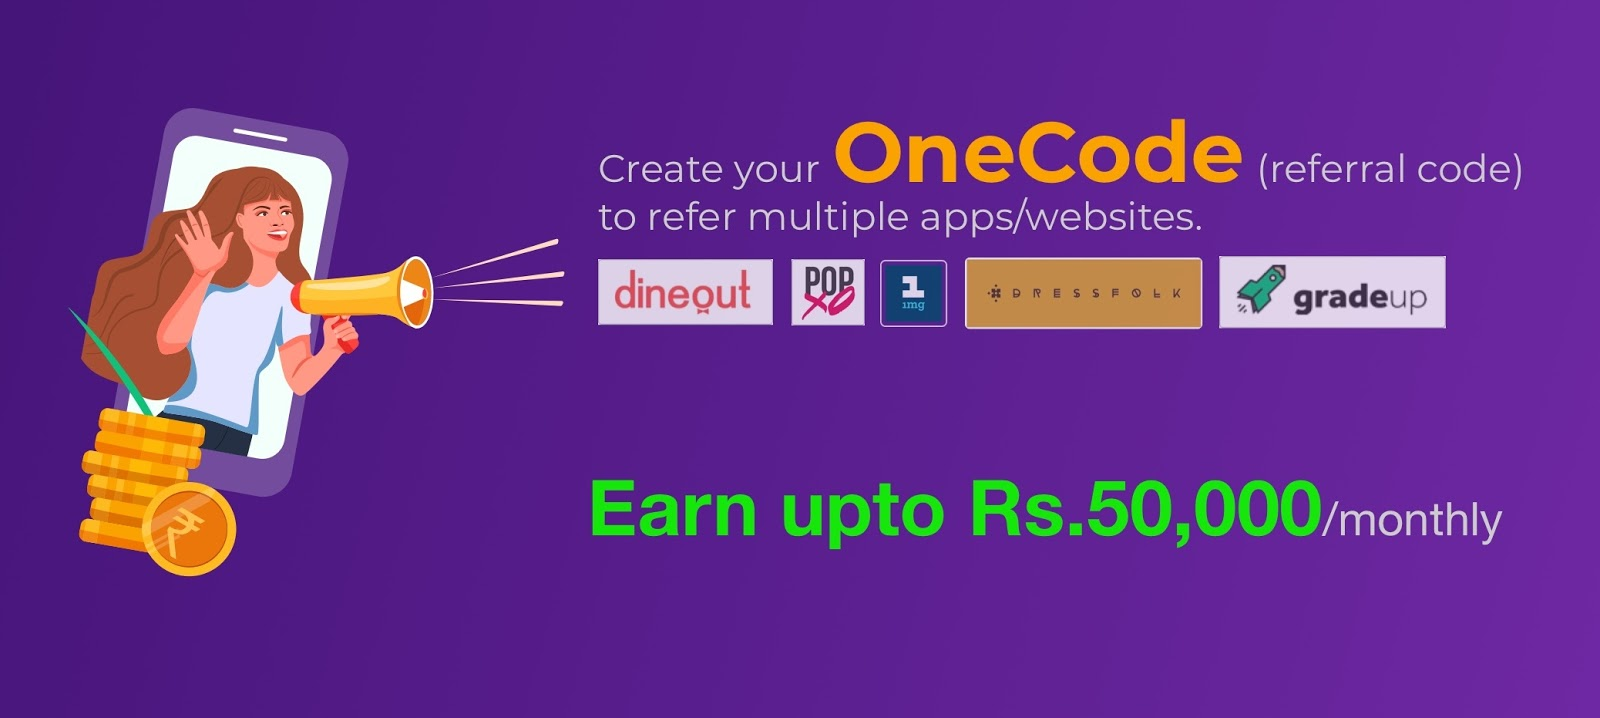 OneCode Refer and earn money using special discount code